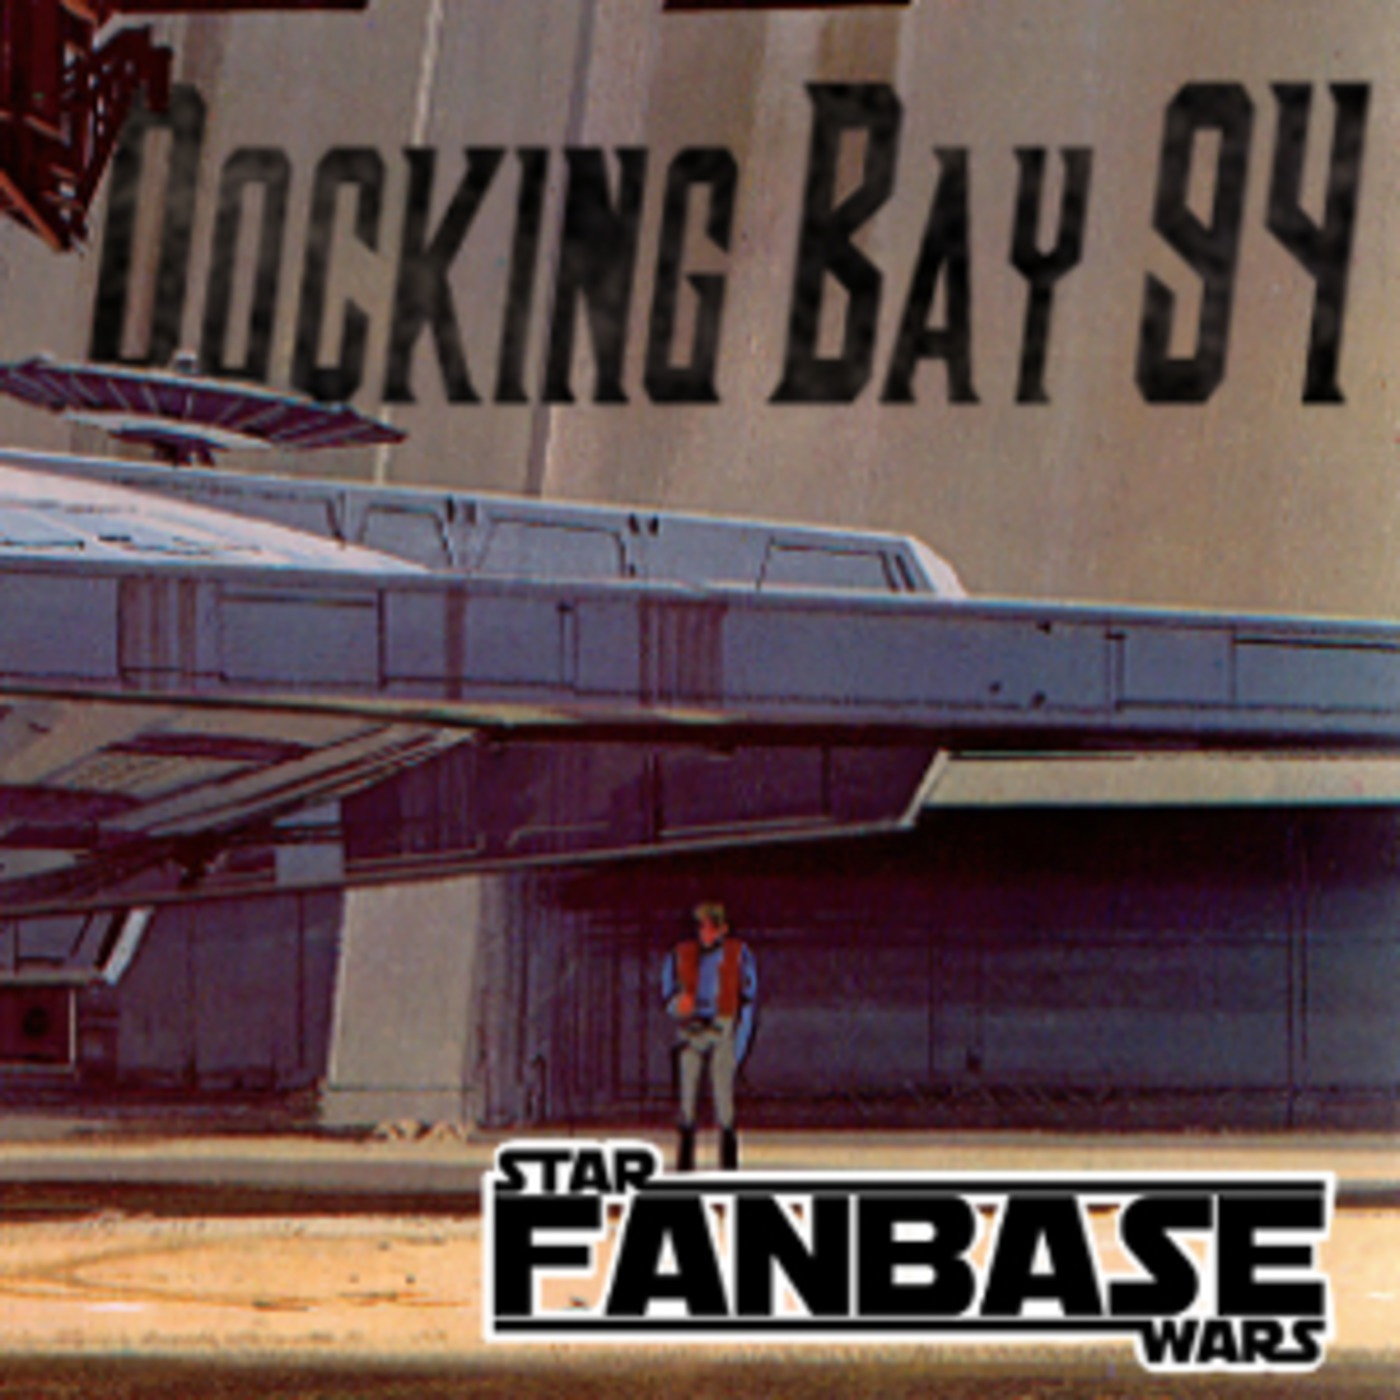 Star Wars Fanbase - Docking Bay 94